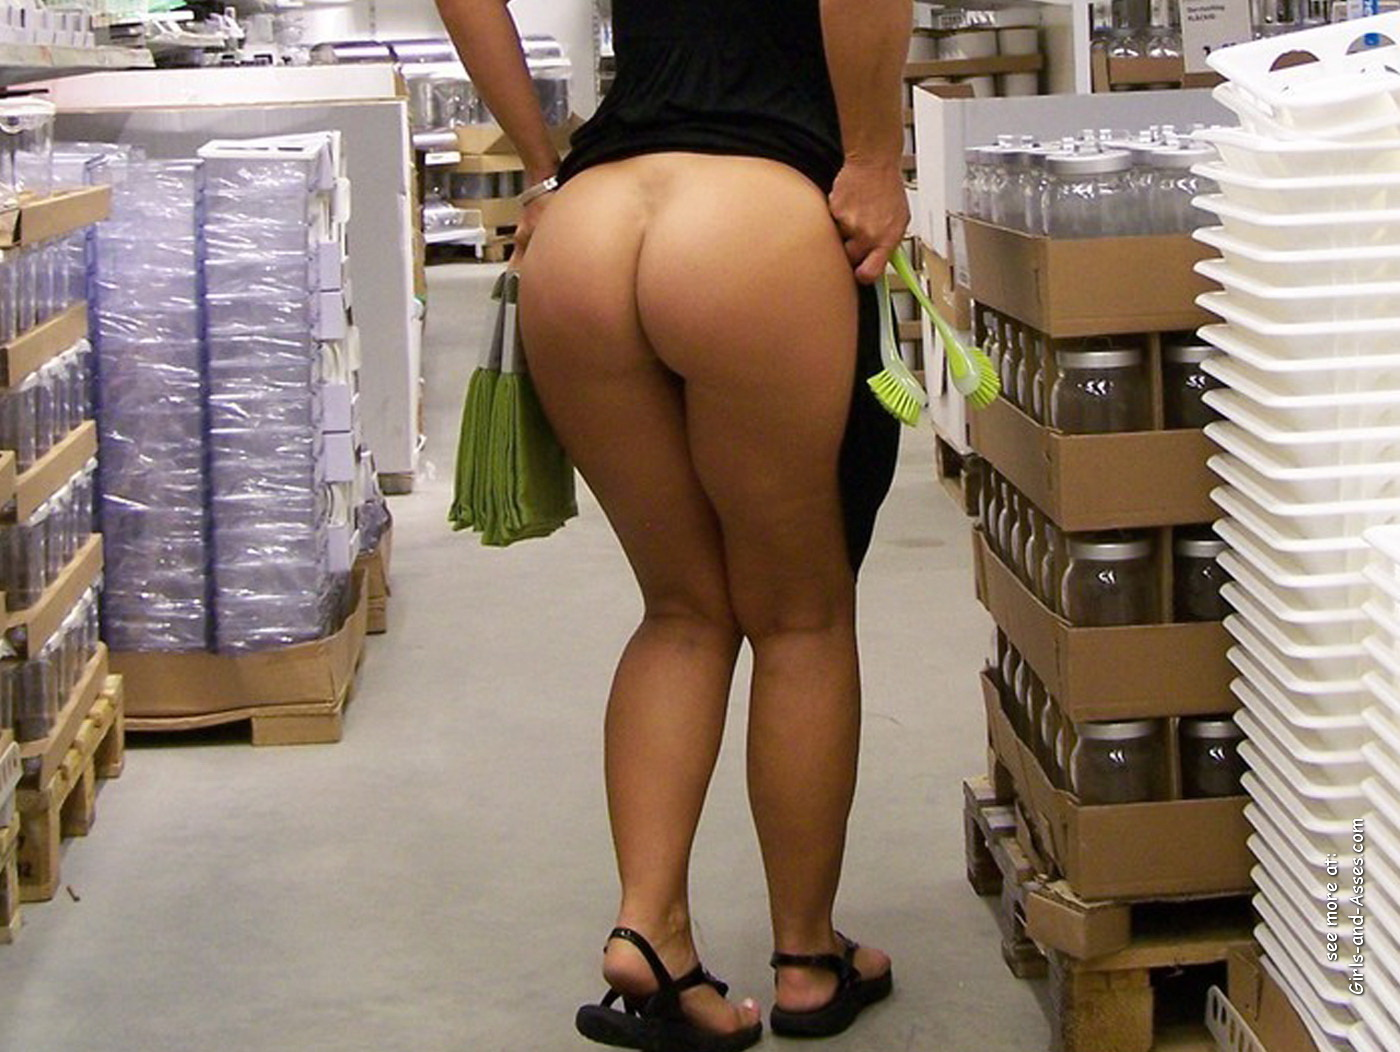 nude shopping photo girl shows ass in store 01305